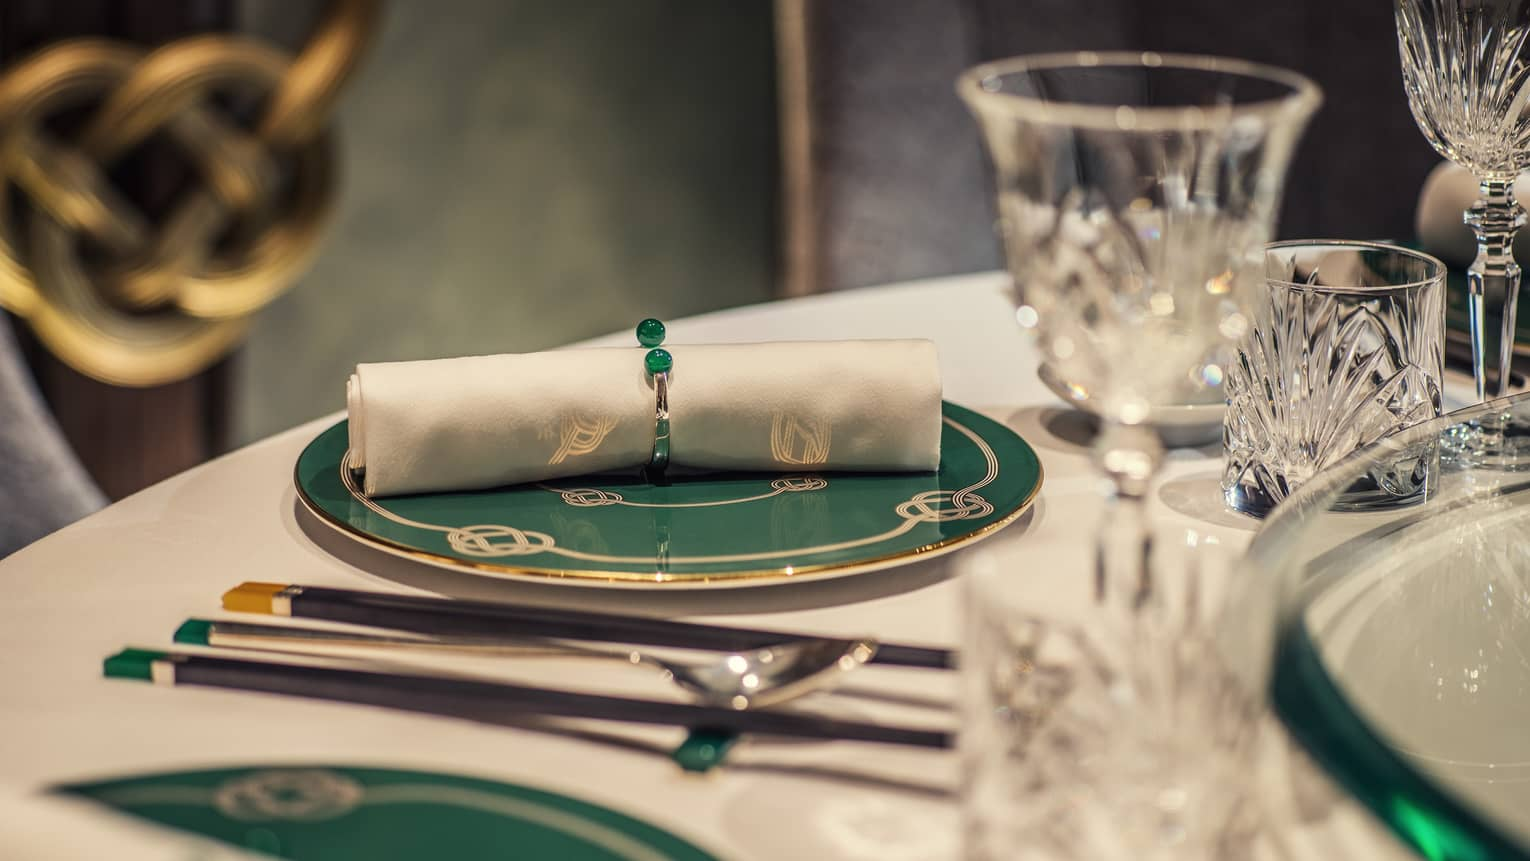 Yu Yuan close-up of rolled white napkin on green-and-gold plate, crystal glasses